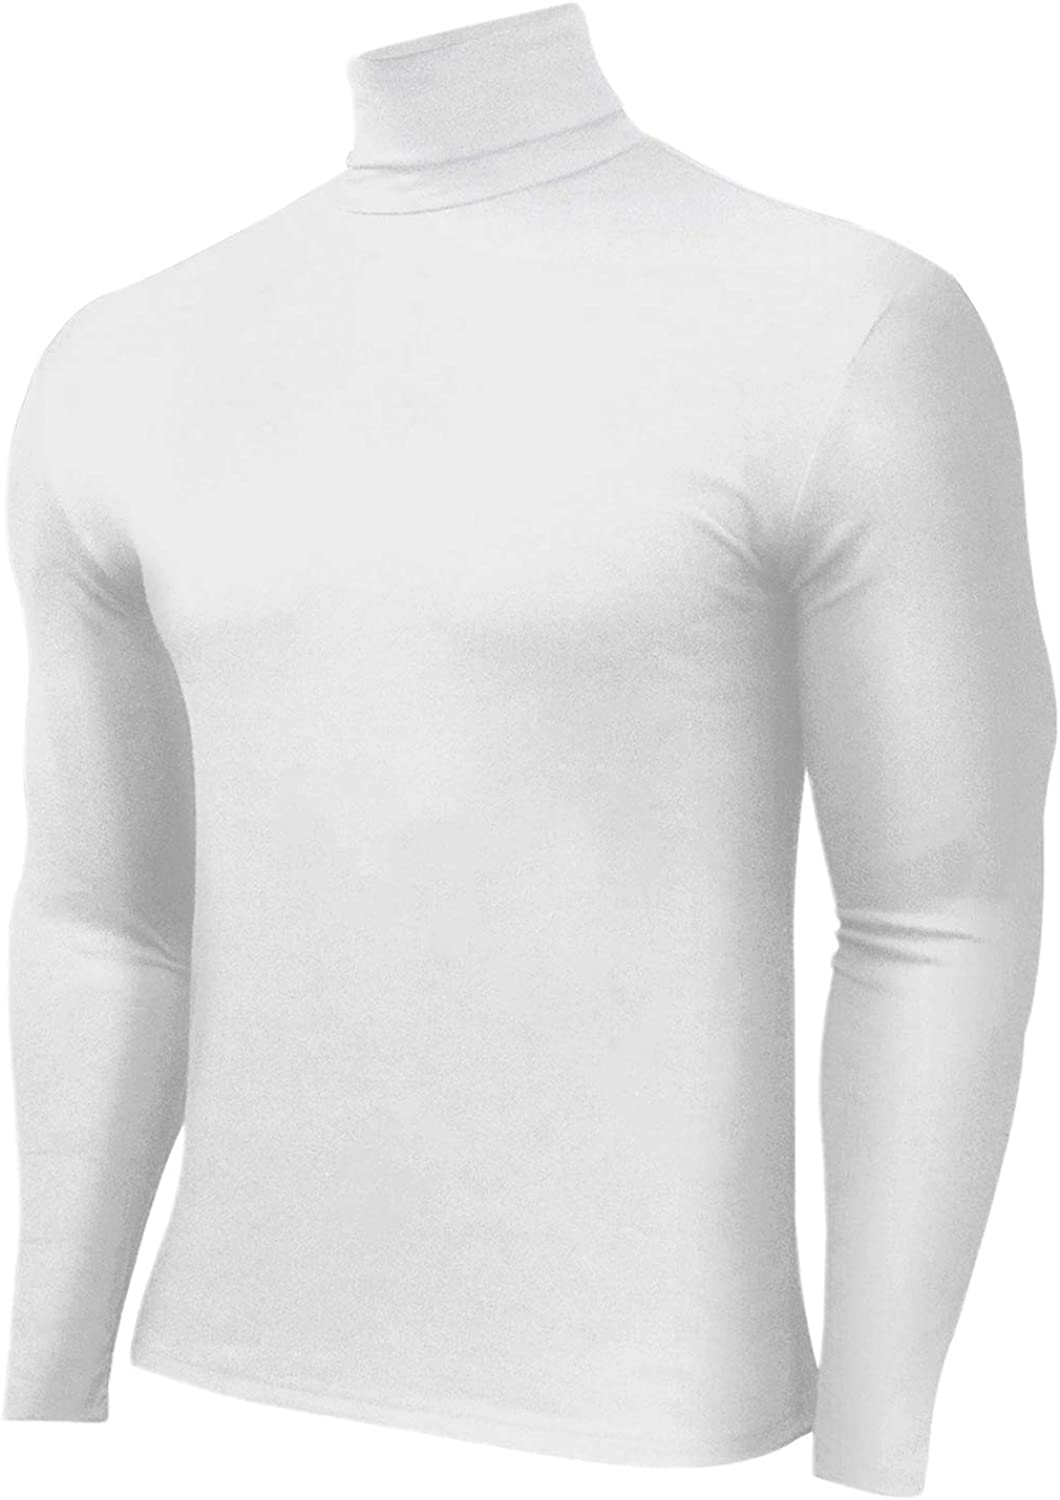 HTB Mens 1-2 Pack Long Sleeve T Shirts Slim Fit Cotton Pullover Base Layer Tops